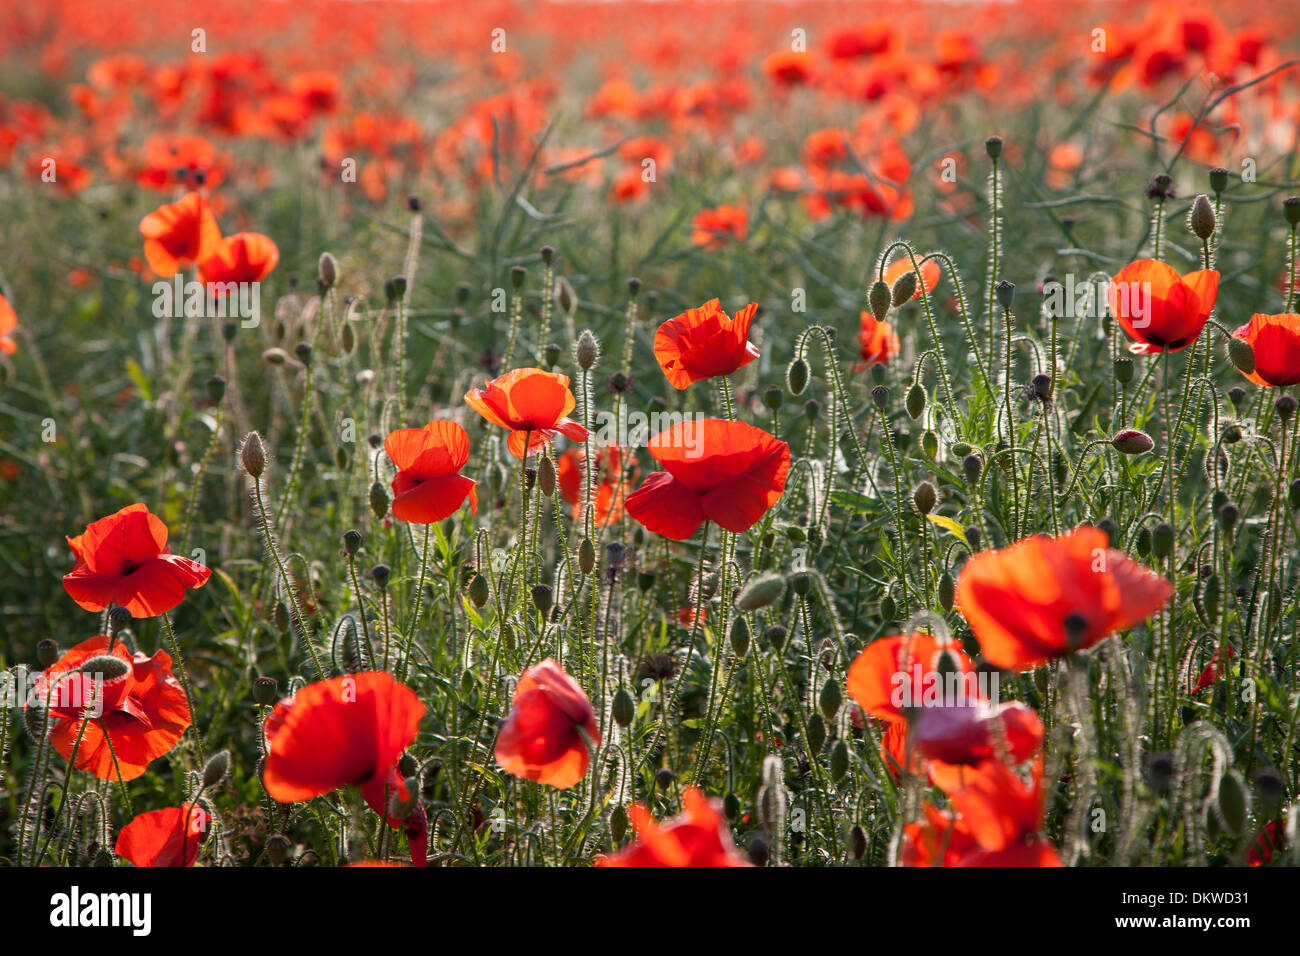 Field of poppies with the sun shining through them. - Stock Image